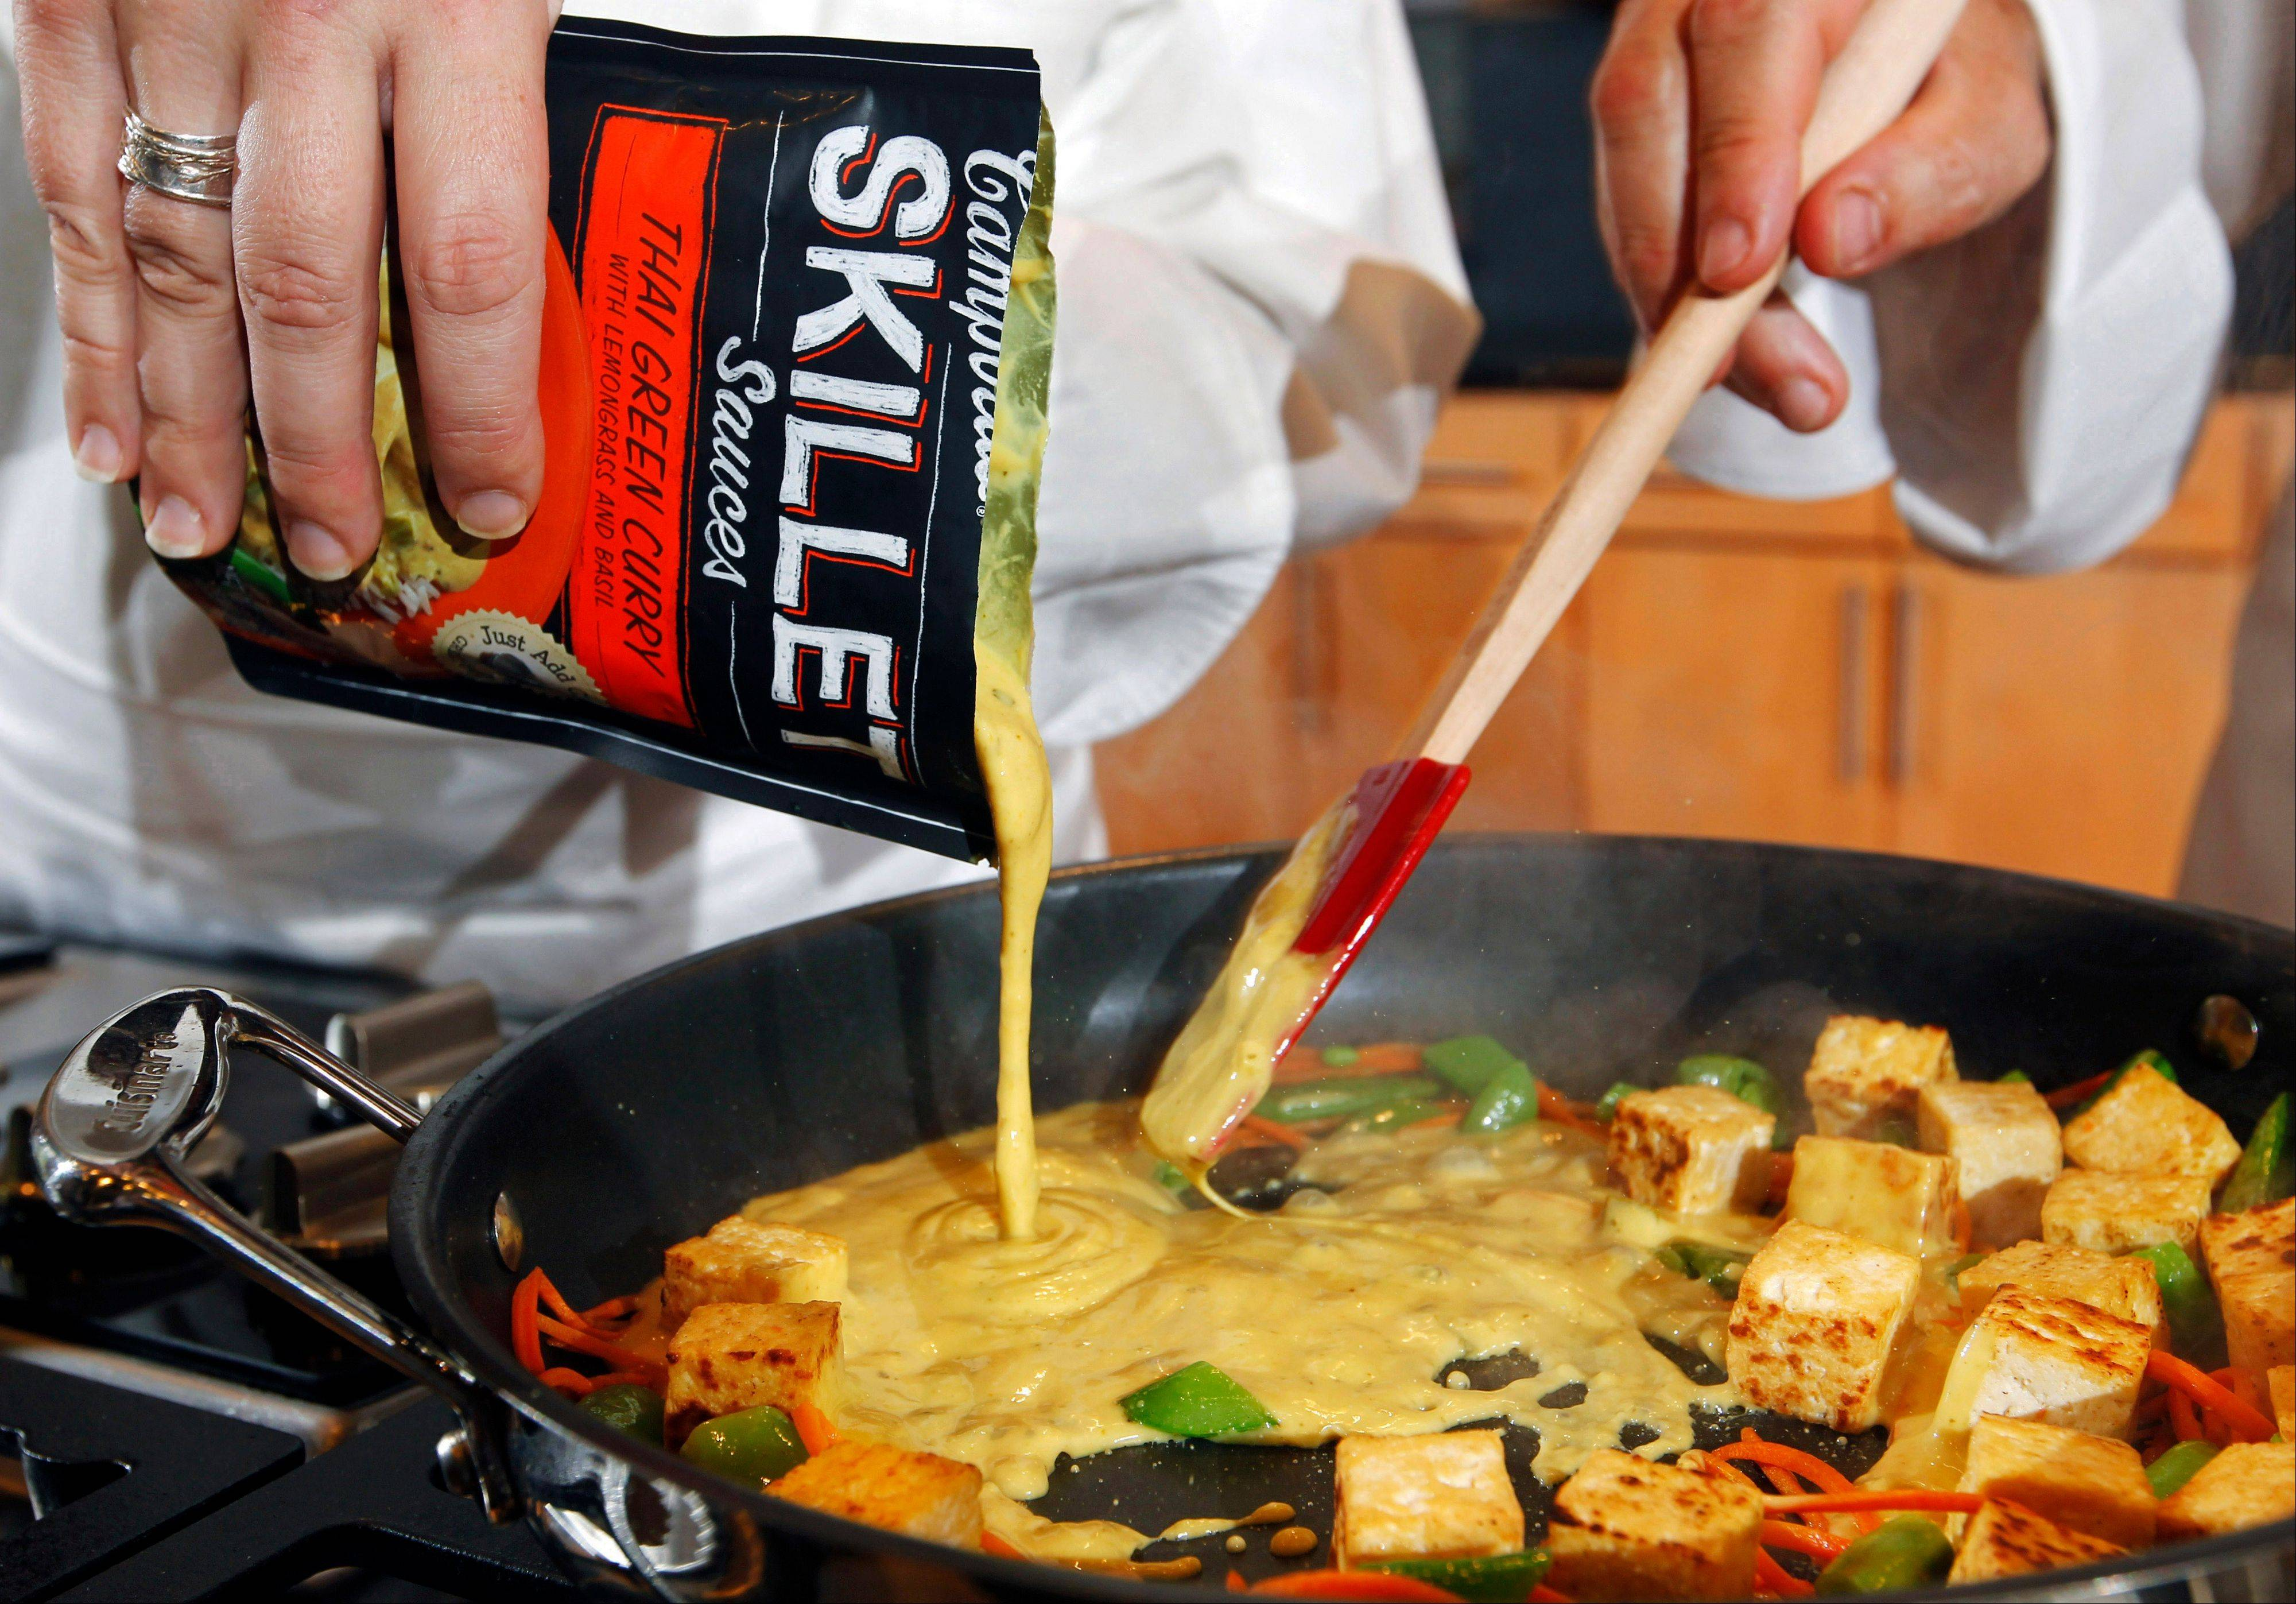 Campbell�s new Green Thai Curry Skillet sauce is poured over fresh produce and tofu at the Campbell Soup Company headquarters in Camden, N.J. Last year the company began a quest that led executives to trendsetting cities including Portland, Ore. and London to figure out how to make soups that appeal to younger, finicky customers. In the year ahead, the 143-year-old company plans to roll out 50 new products such as Moroccan Style Chicken and Spicy Chorizo.